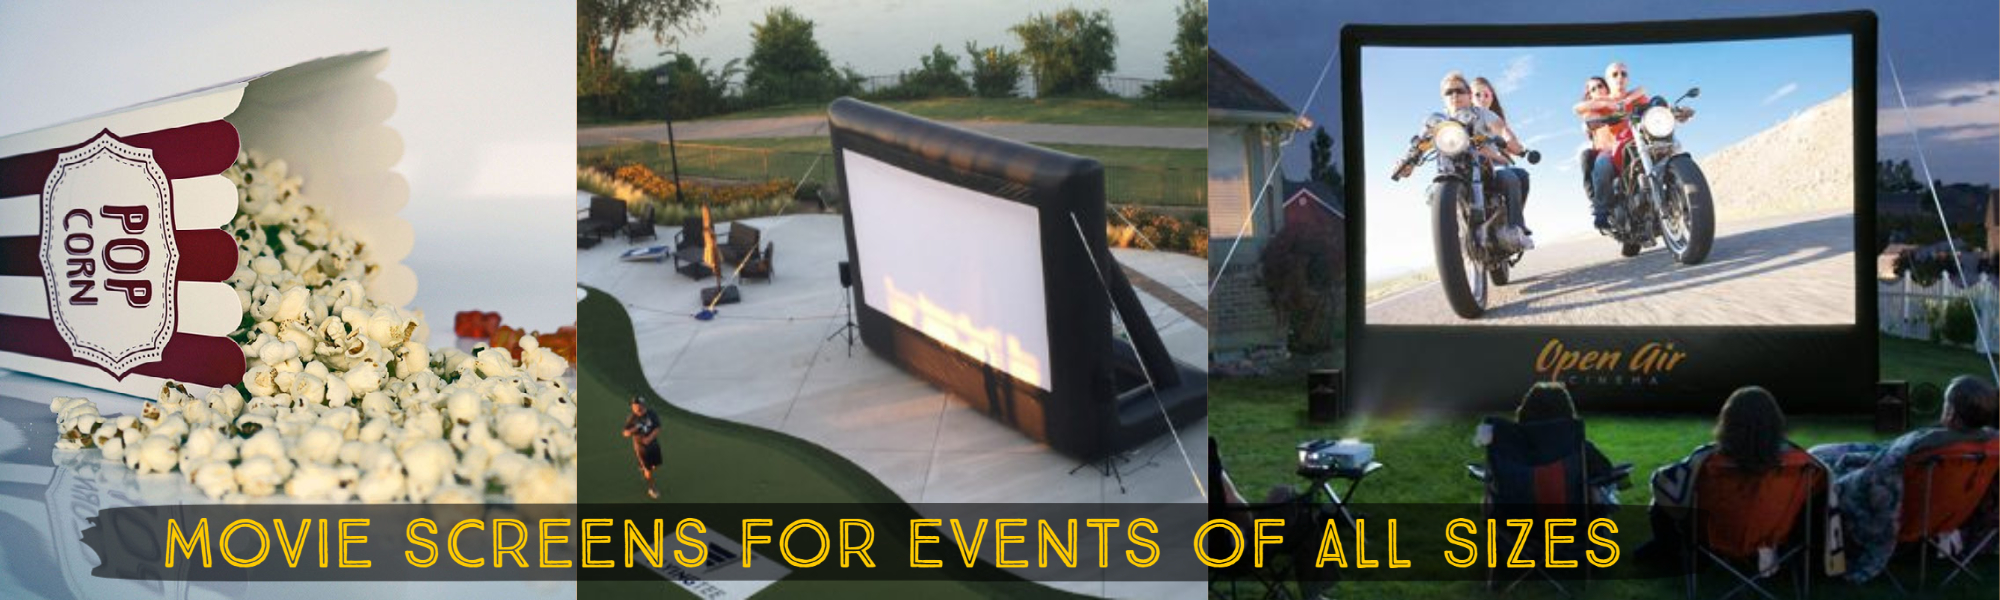 movie screen rentals